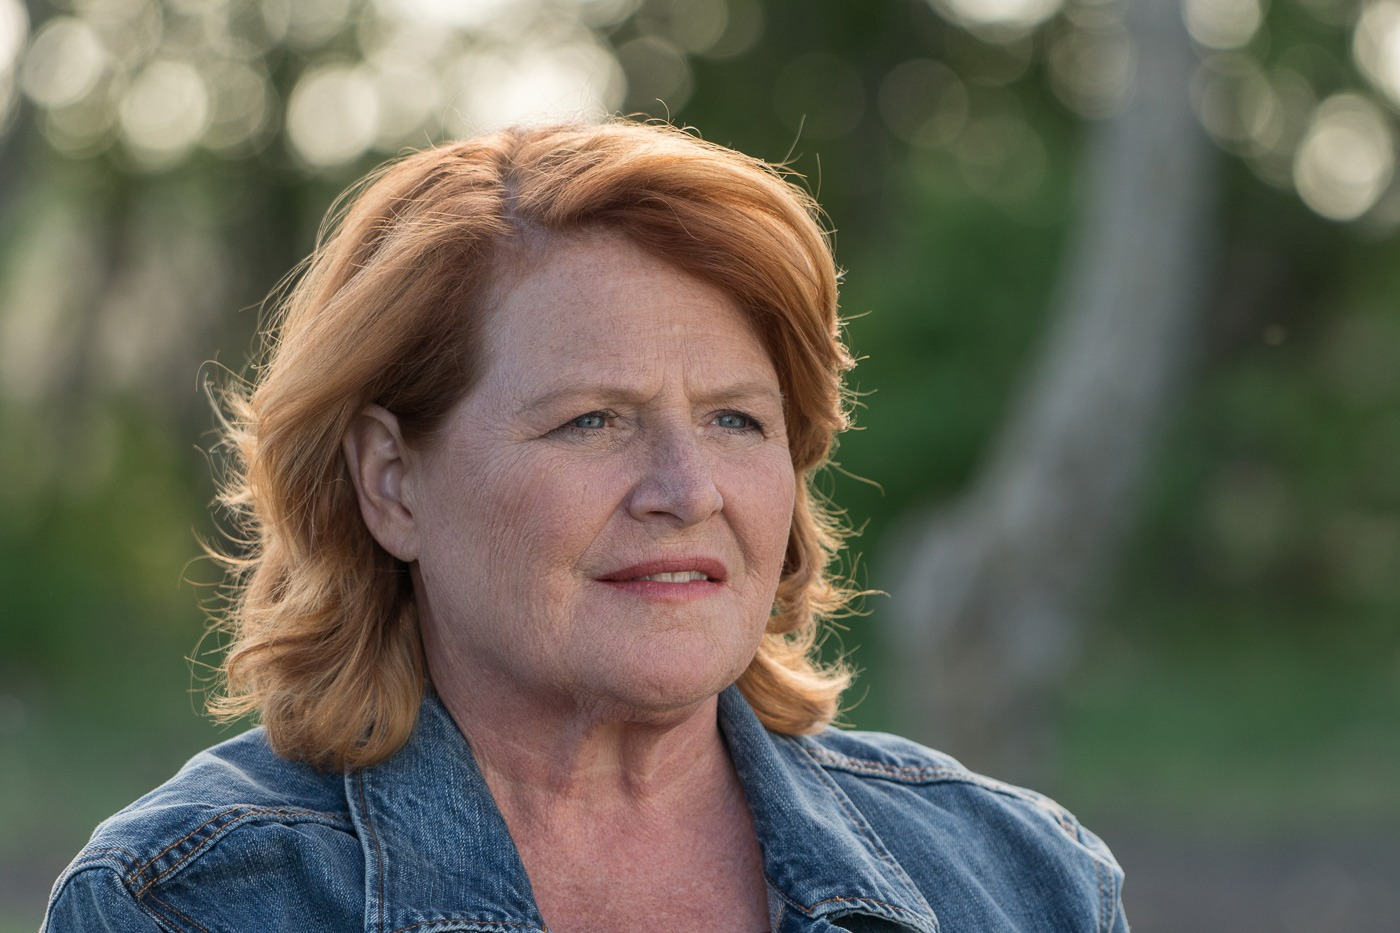 Heitkamp voted against Kavanaugh